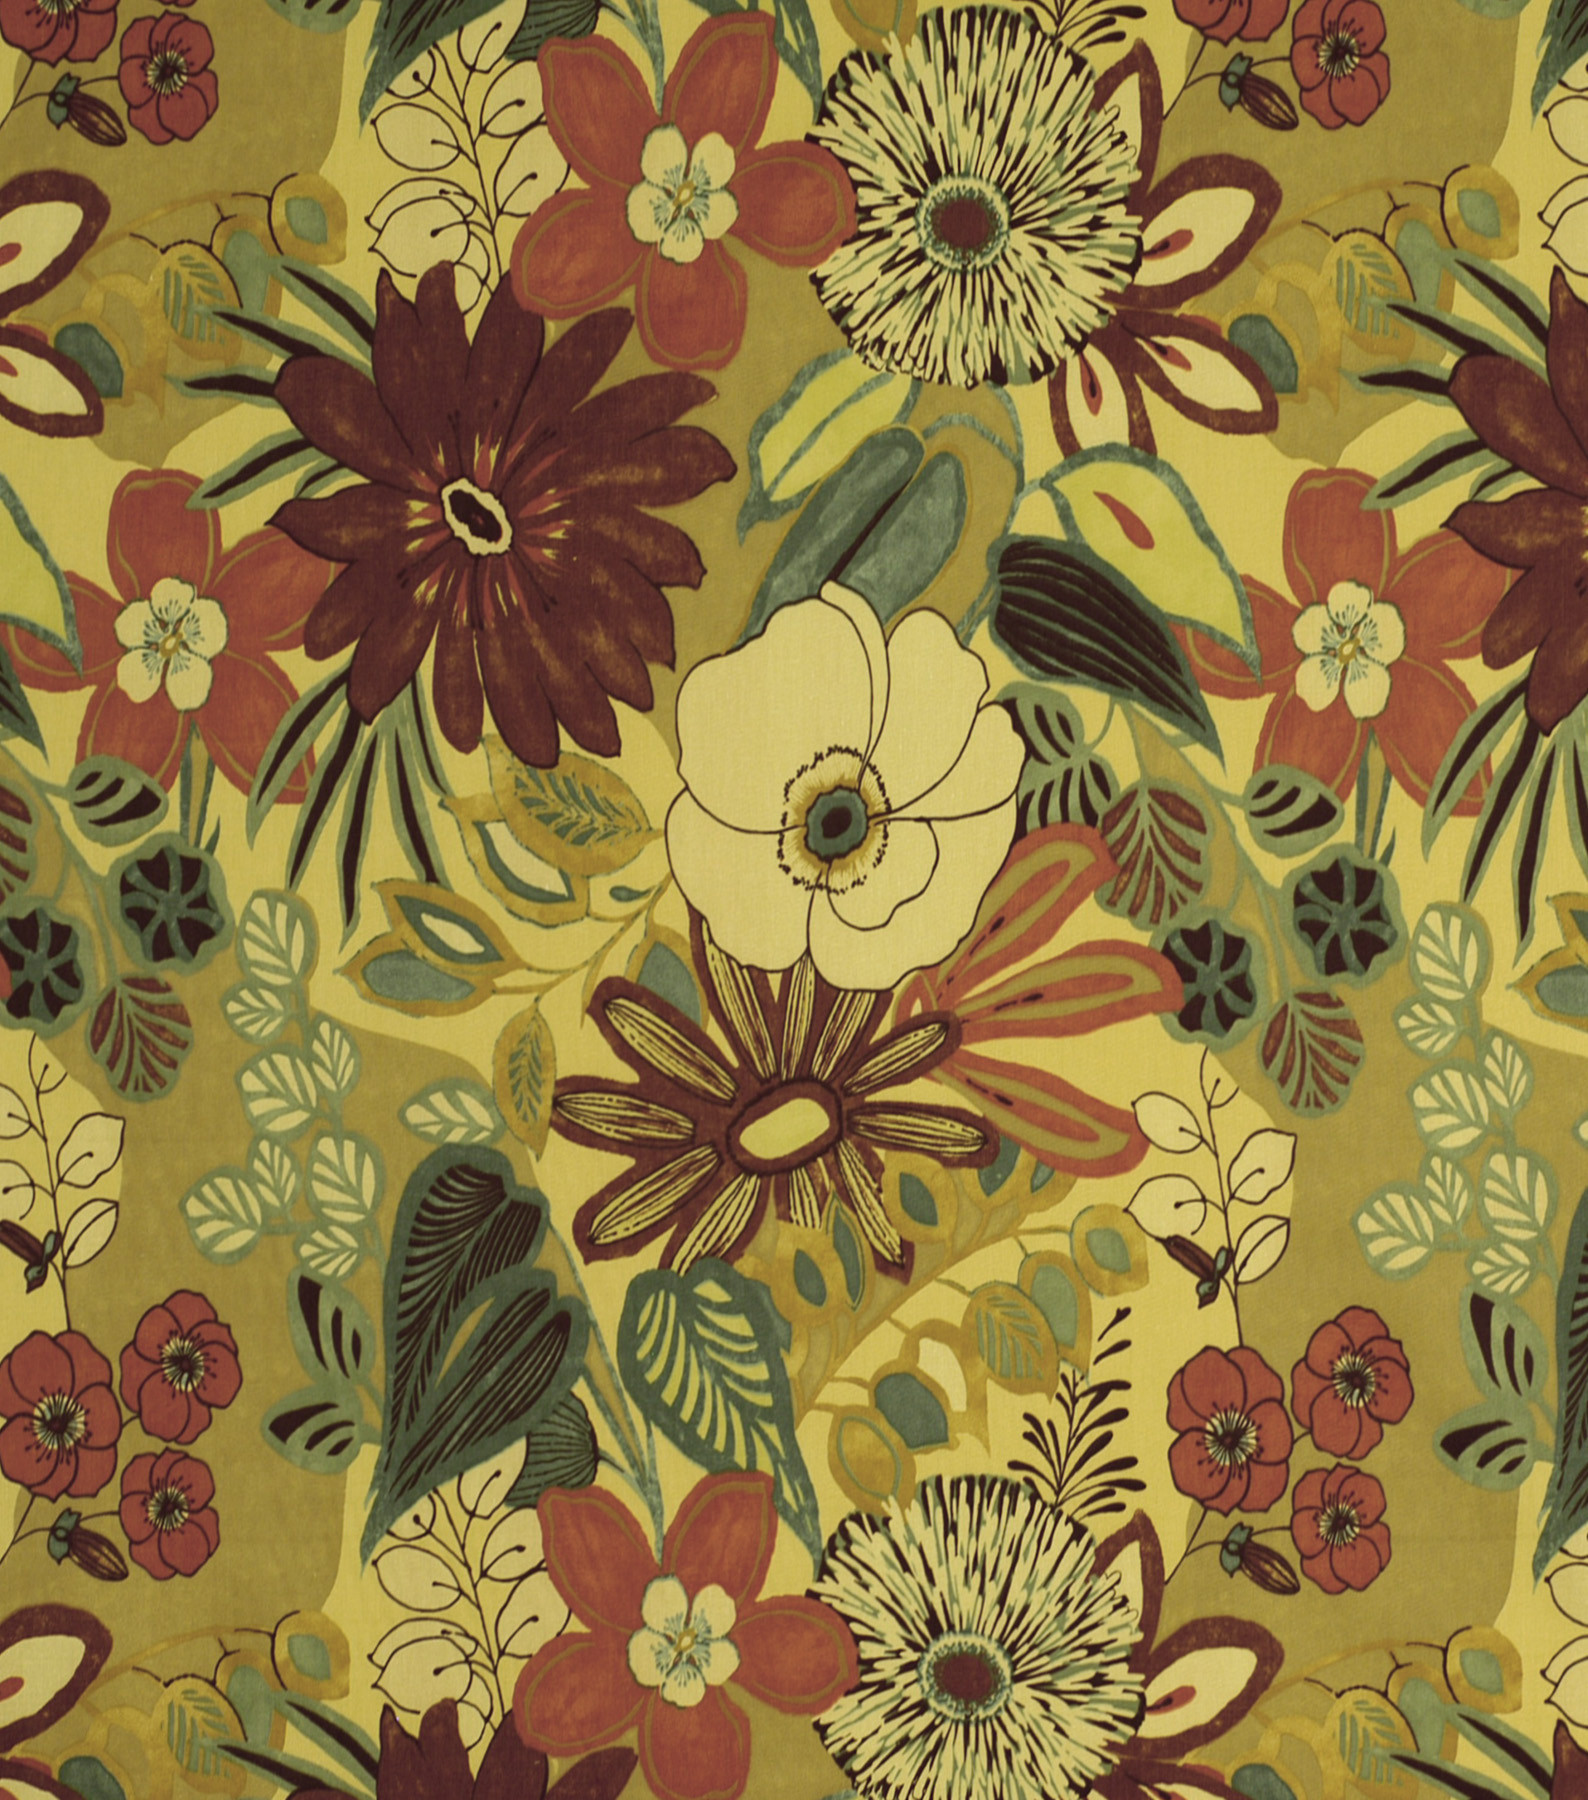 Home Decor 8\u0022x8\u0022 Fabric Swatch-Print Fabric Robert Allen Lilith Chutney